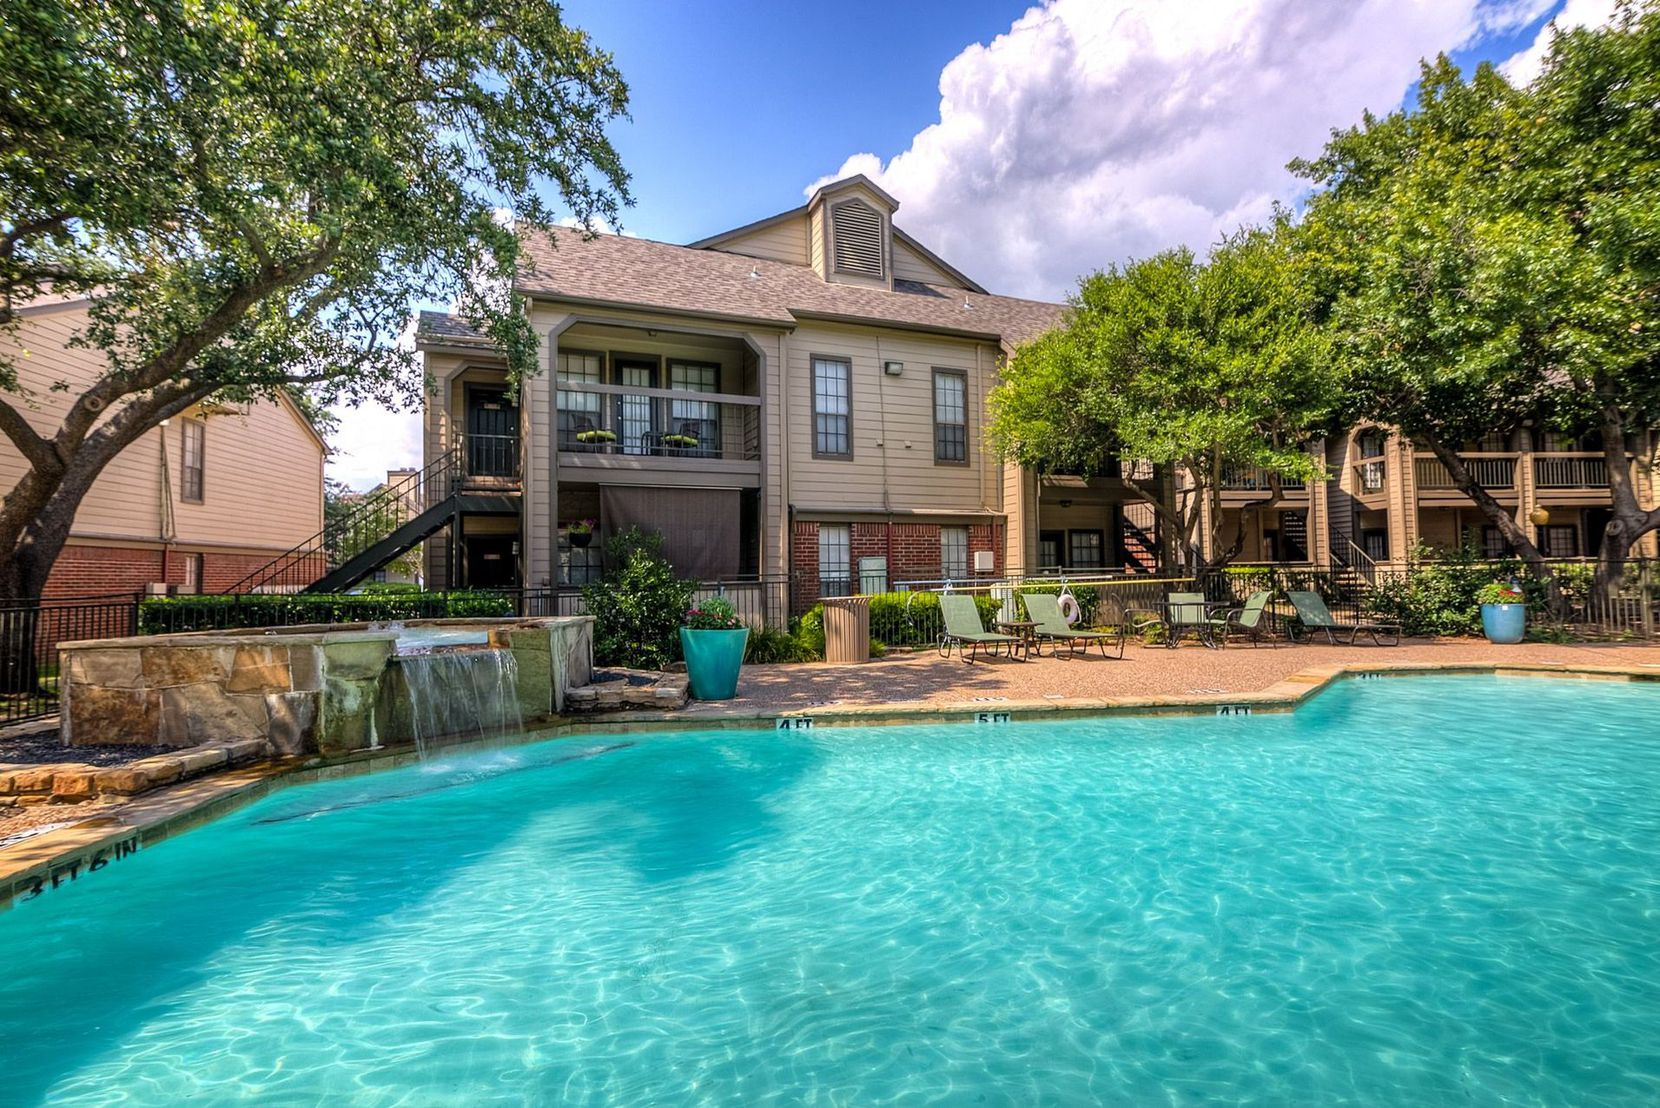 The Residence at North Dallas has more than 1,000 units.